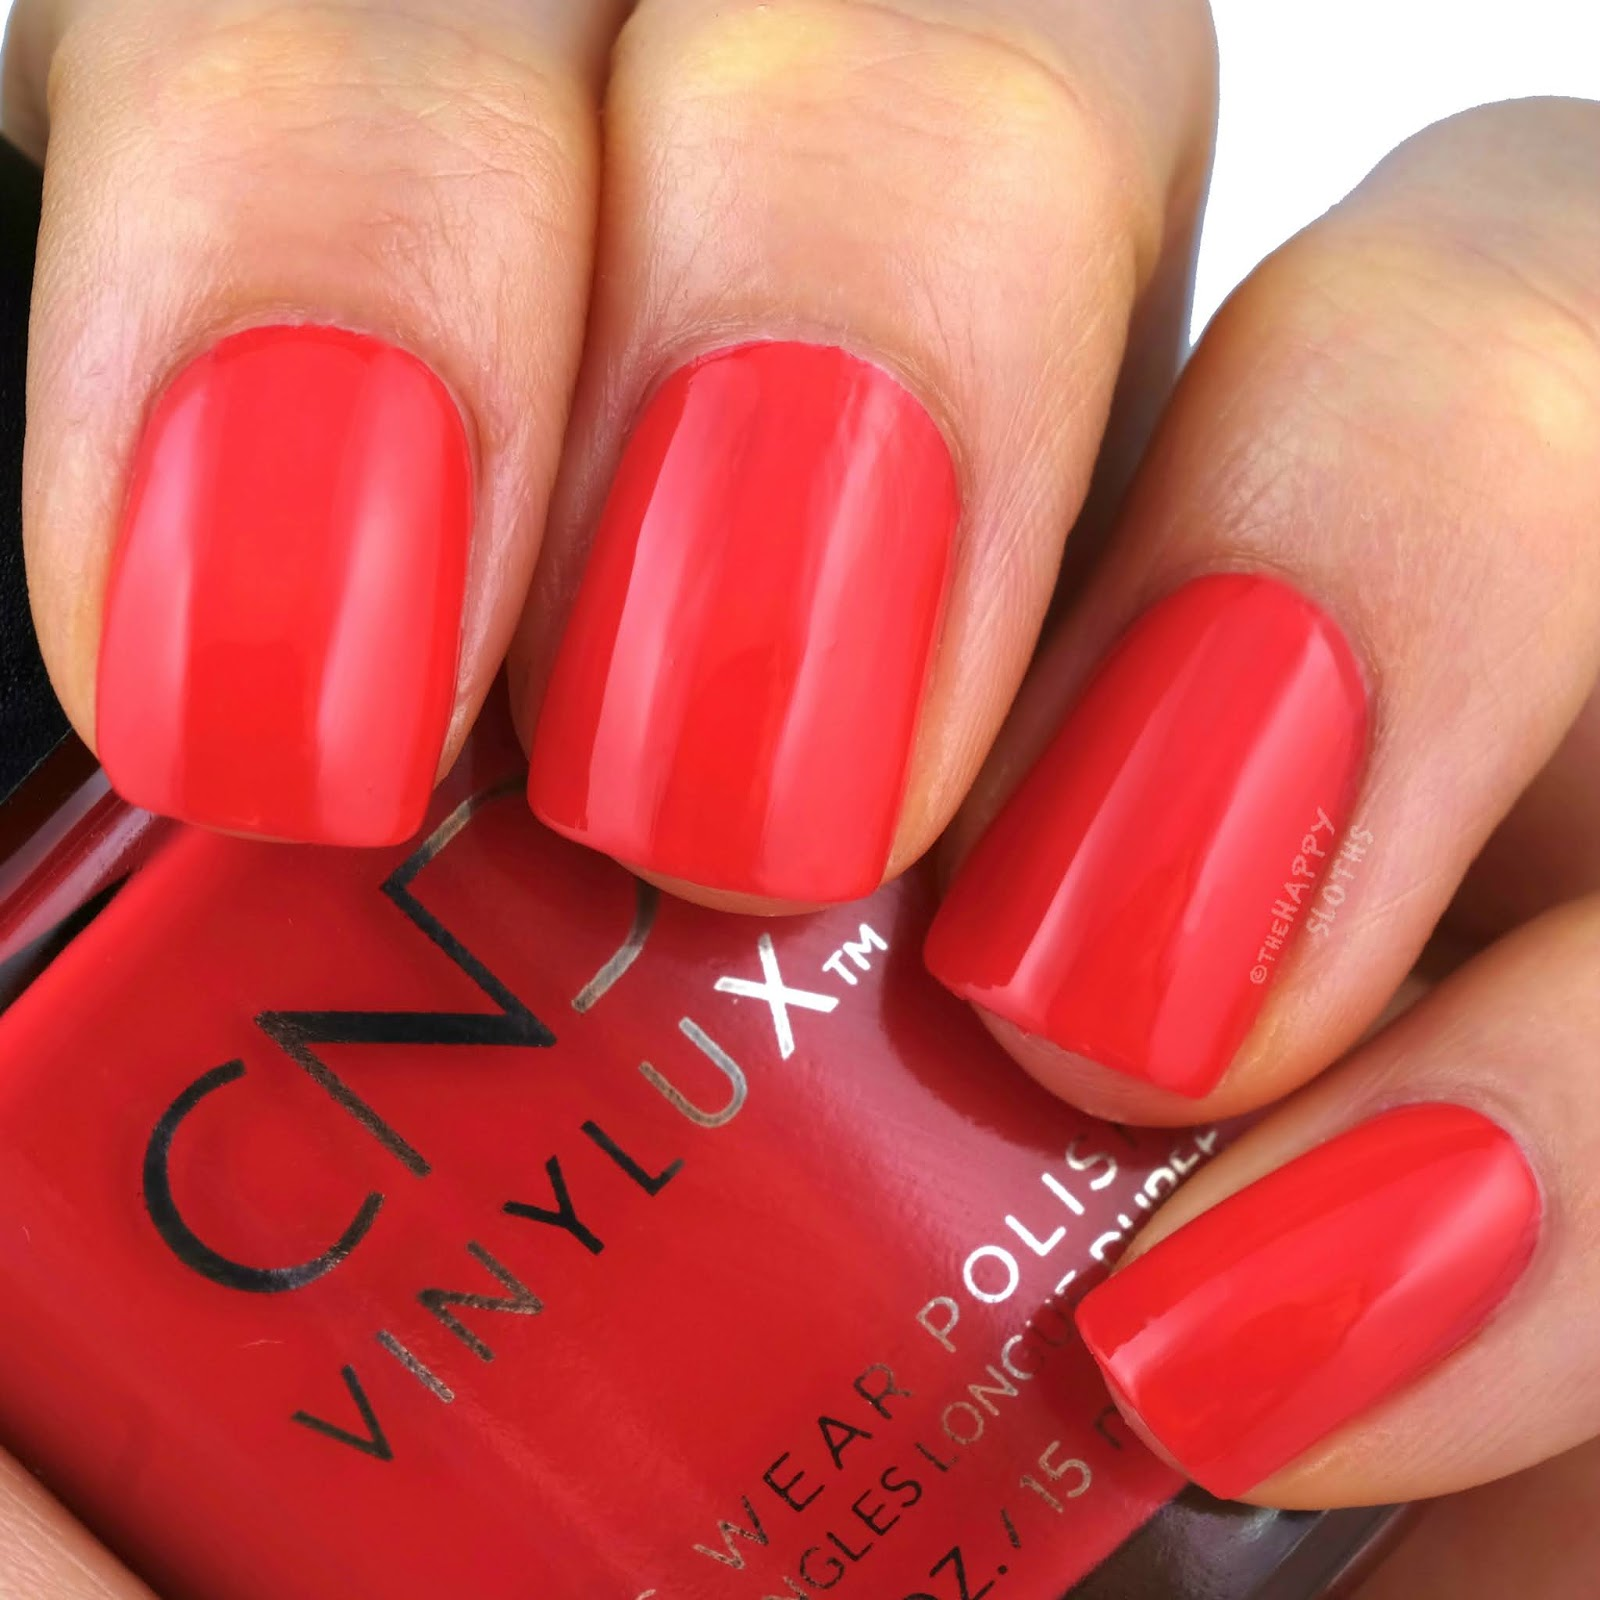 CND | Summer 2020 Nauti Nautical Collection | Hot or Knot: Review and Swatches